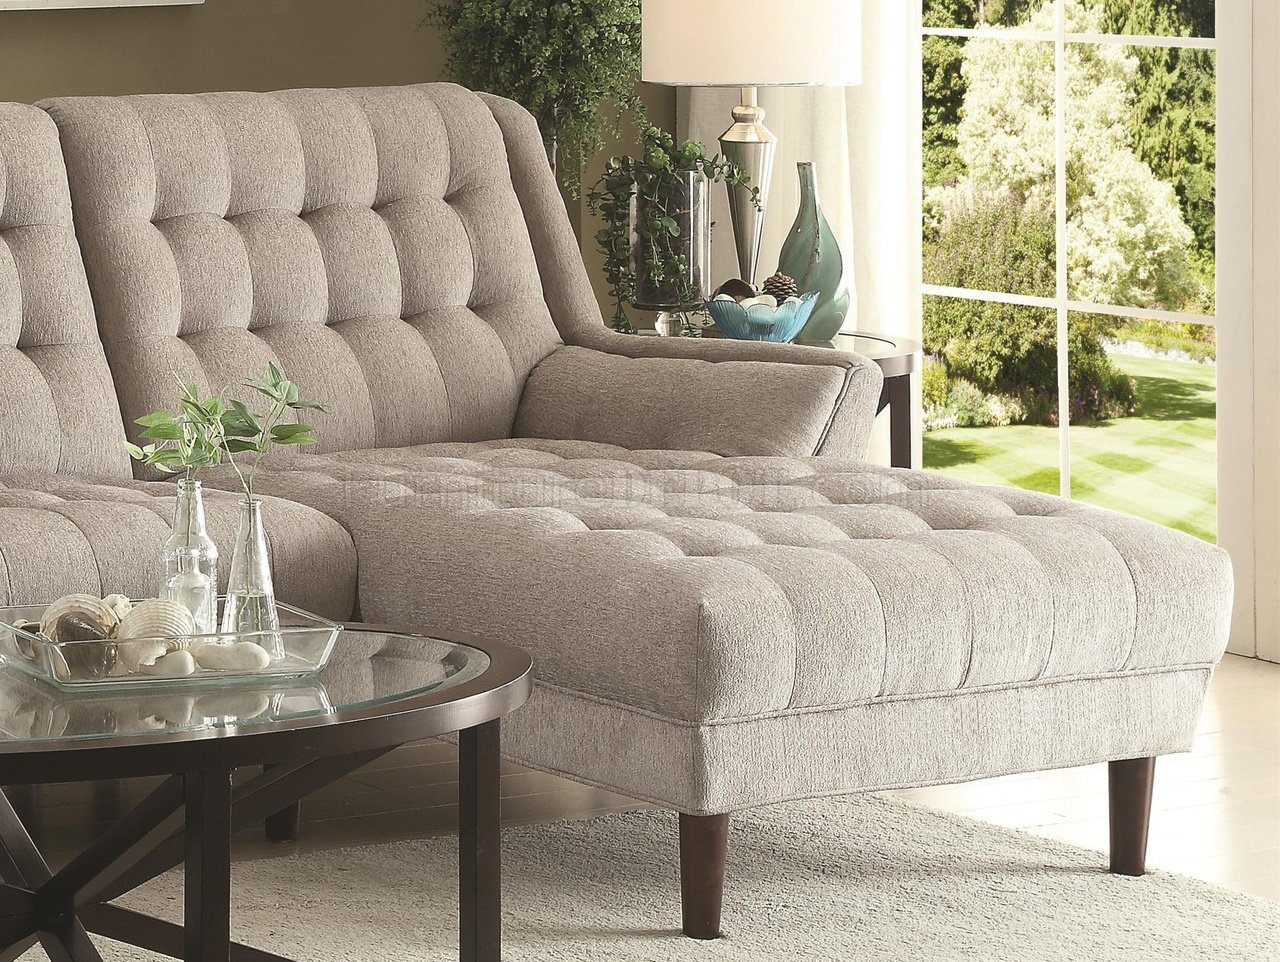 Fine Natalia Sectional Sofa 503777 In Dove Grey Fabric By Coaster Gmtry Best Dining Table And Chair Ideas Images Gmtryco